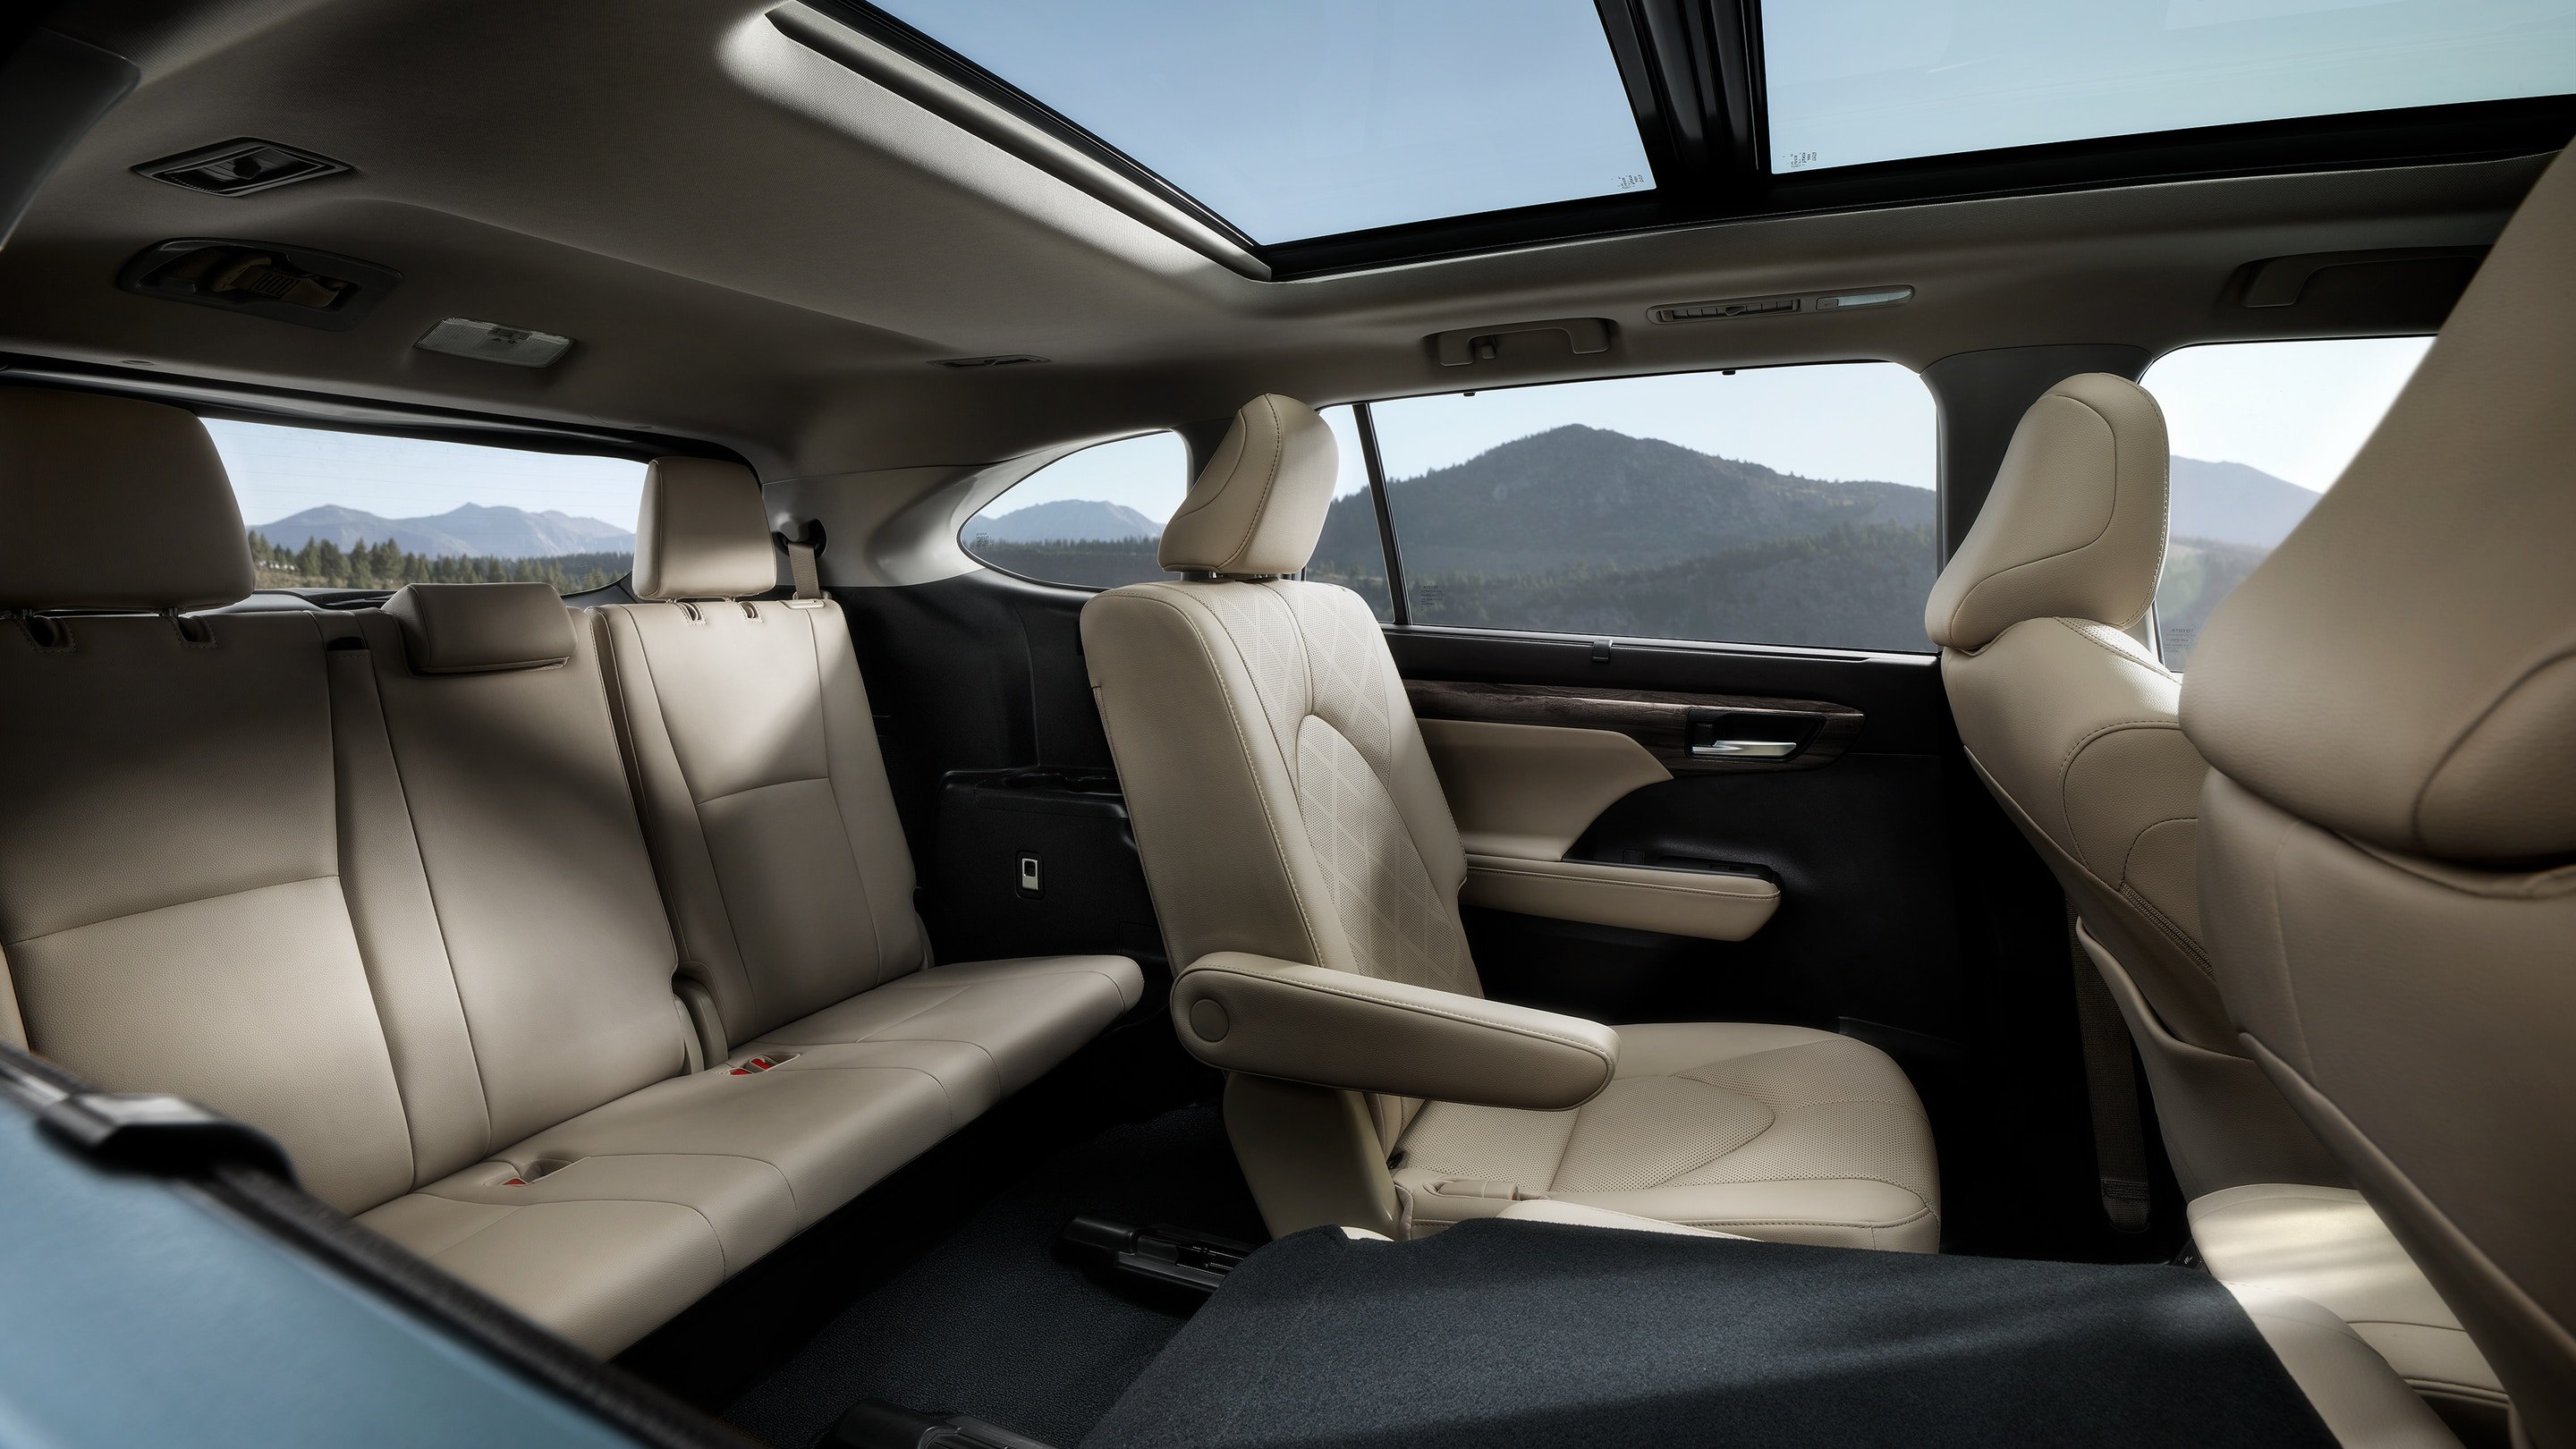 2020 Toyota Highlander Available Leather-Trimmed Interior